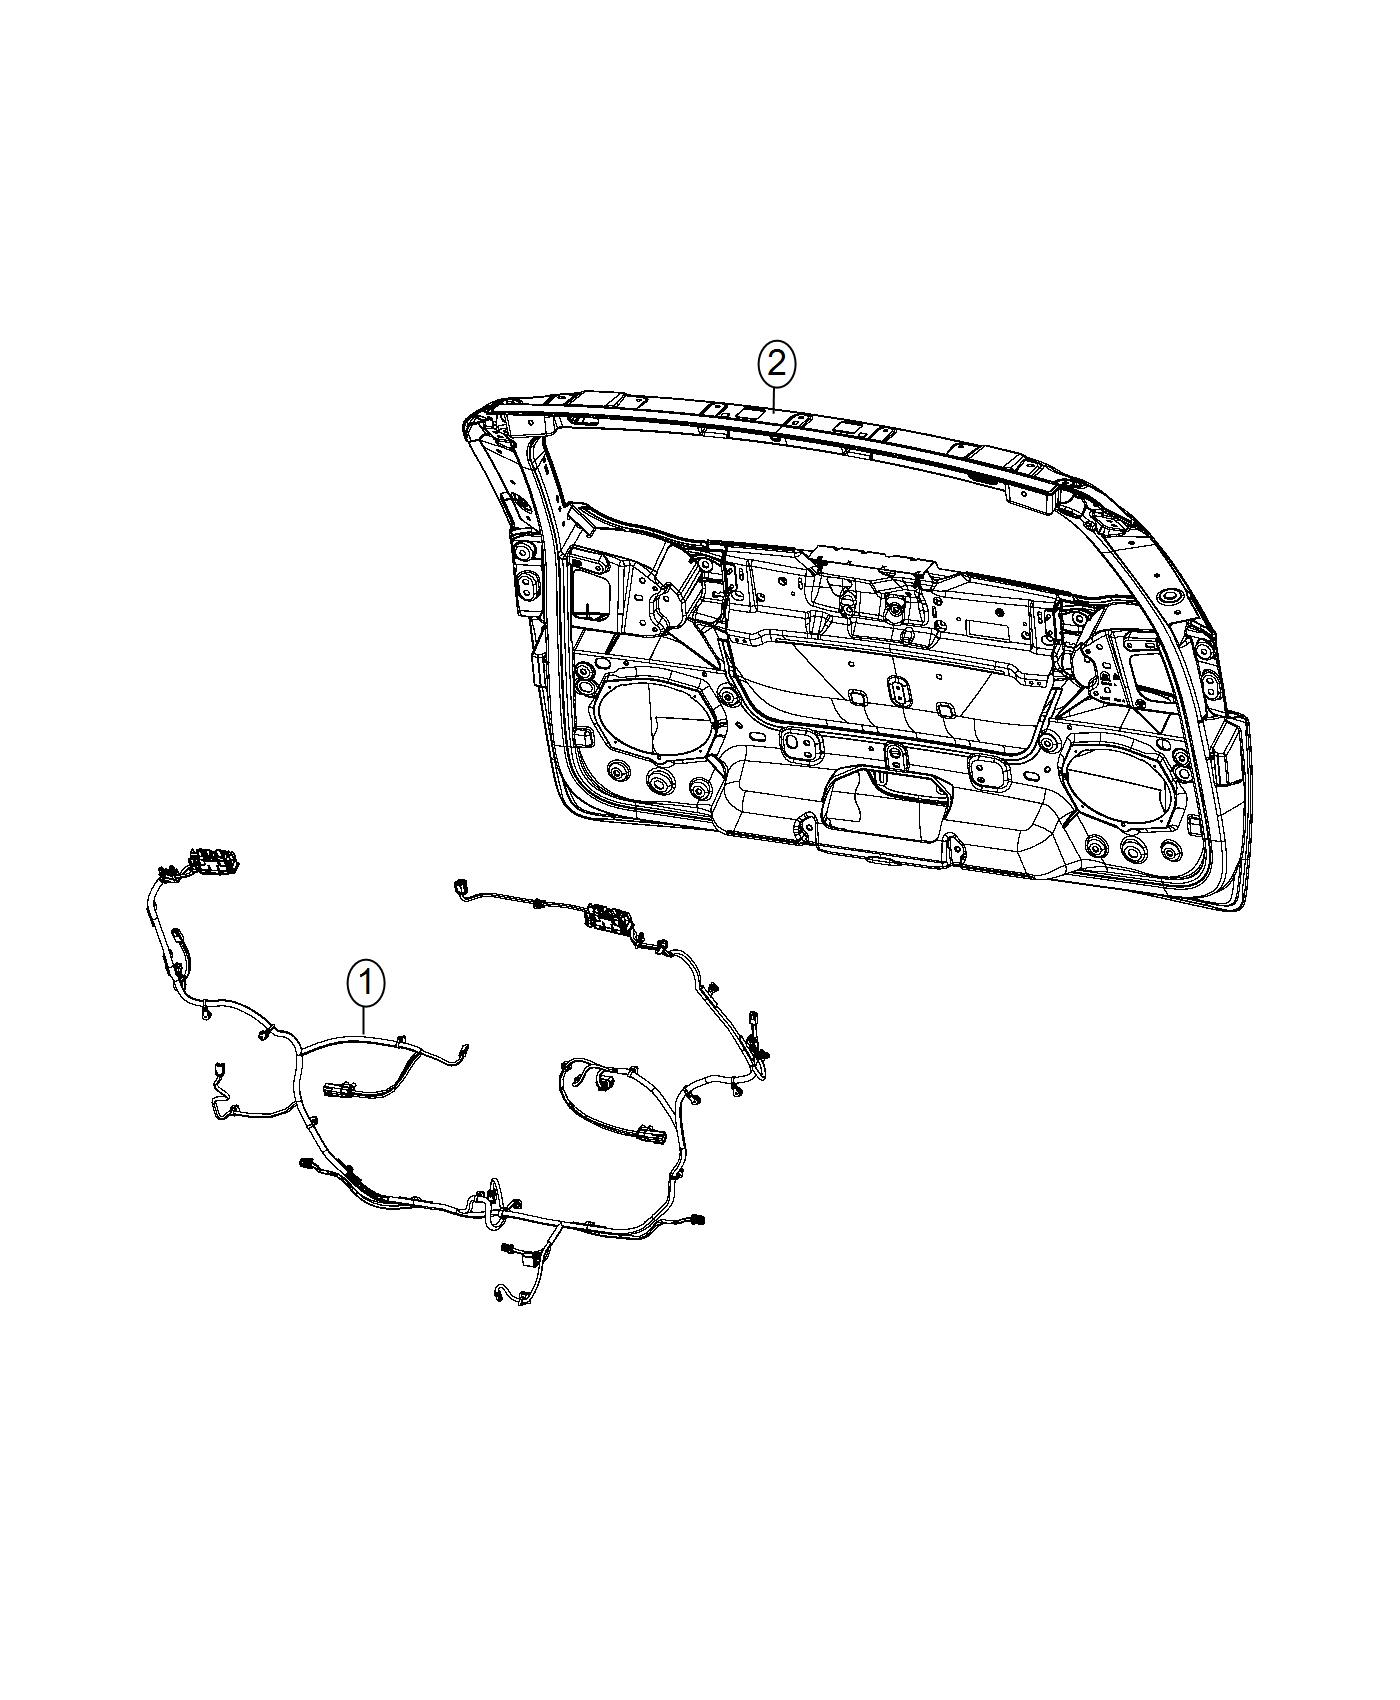 2017 Chrysler Pacifica Wiring. Liftgate. Tail, stop